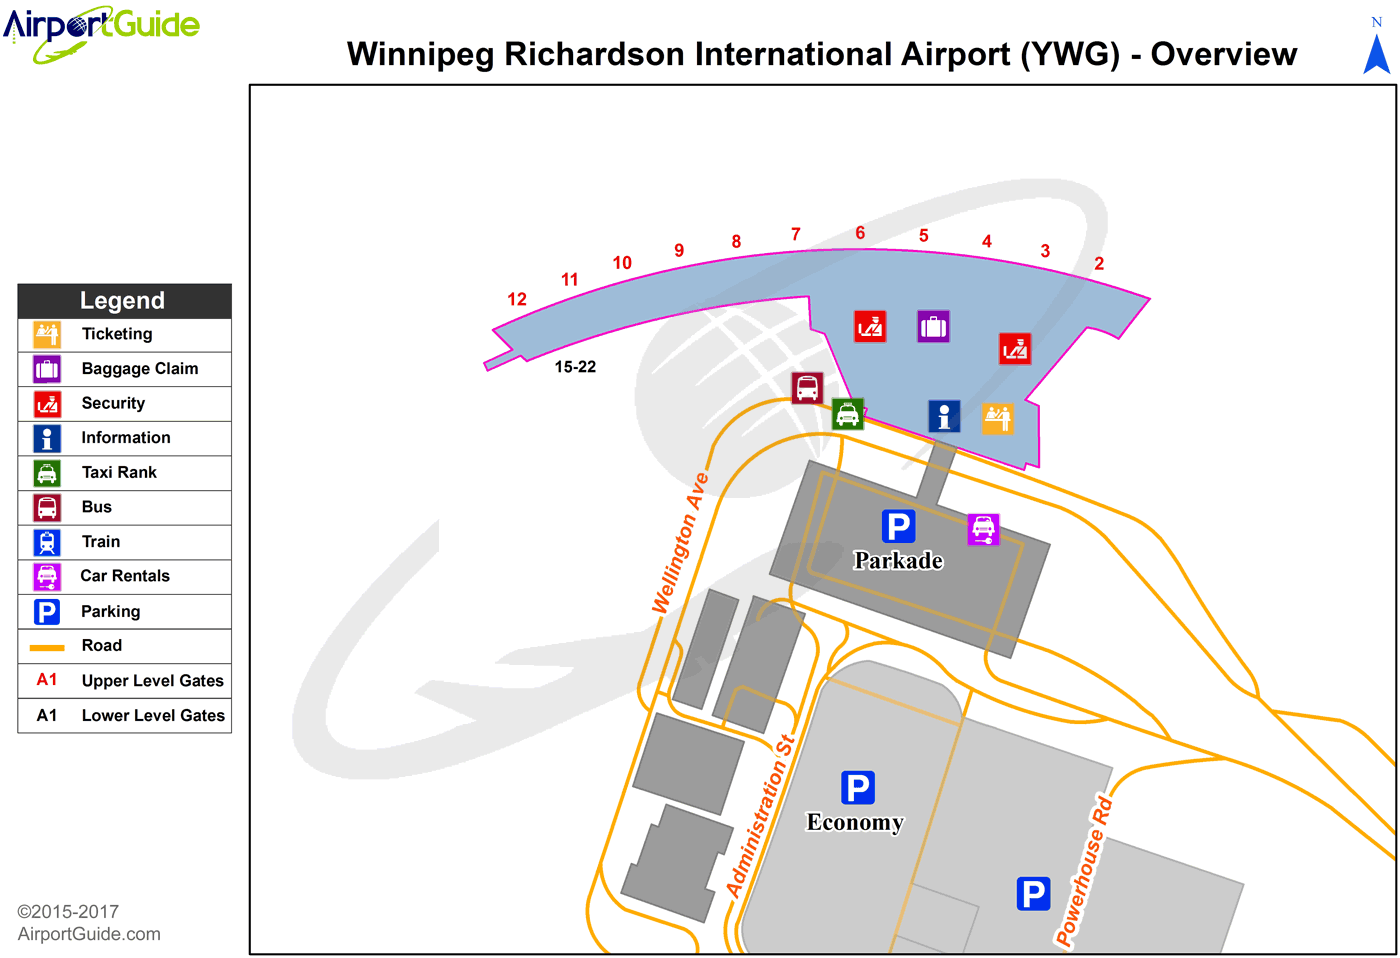 Winnipeg - Winnipeg / James Armstrong Richardson International Airport (YWG) Airport Terminal Map - Overview